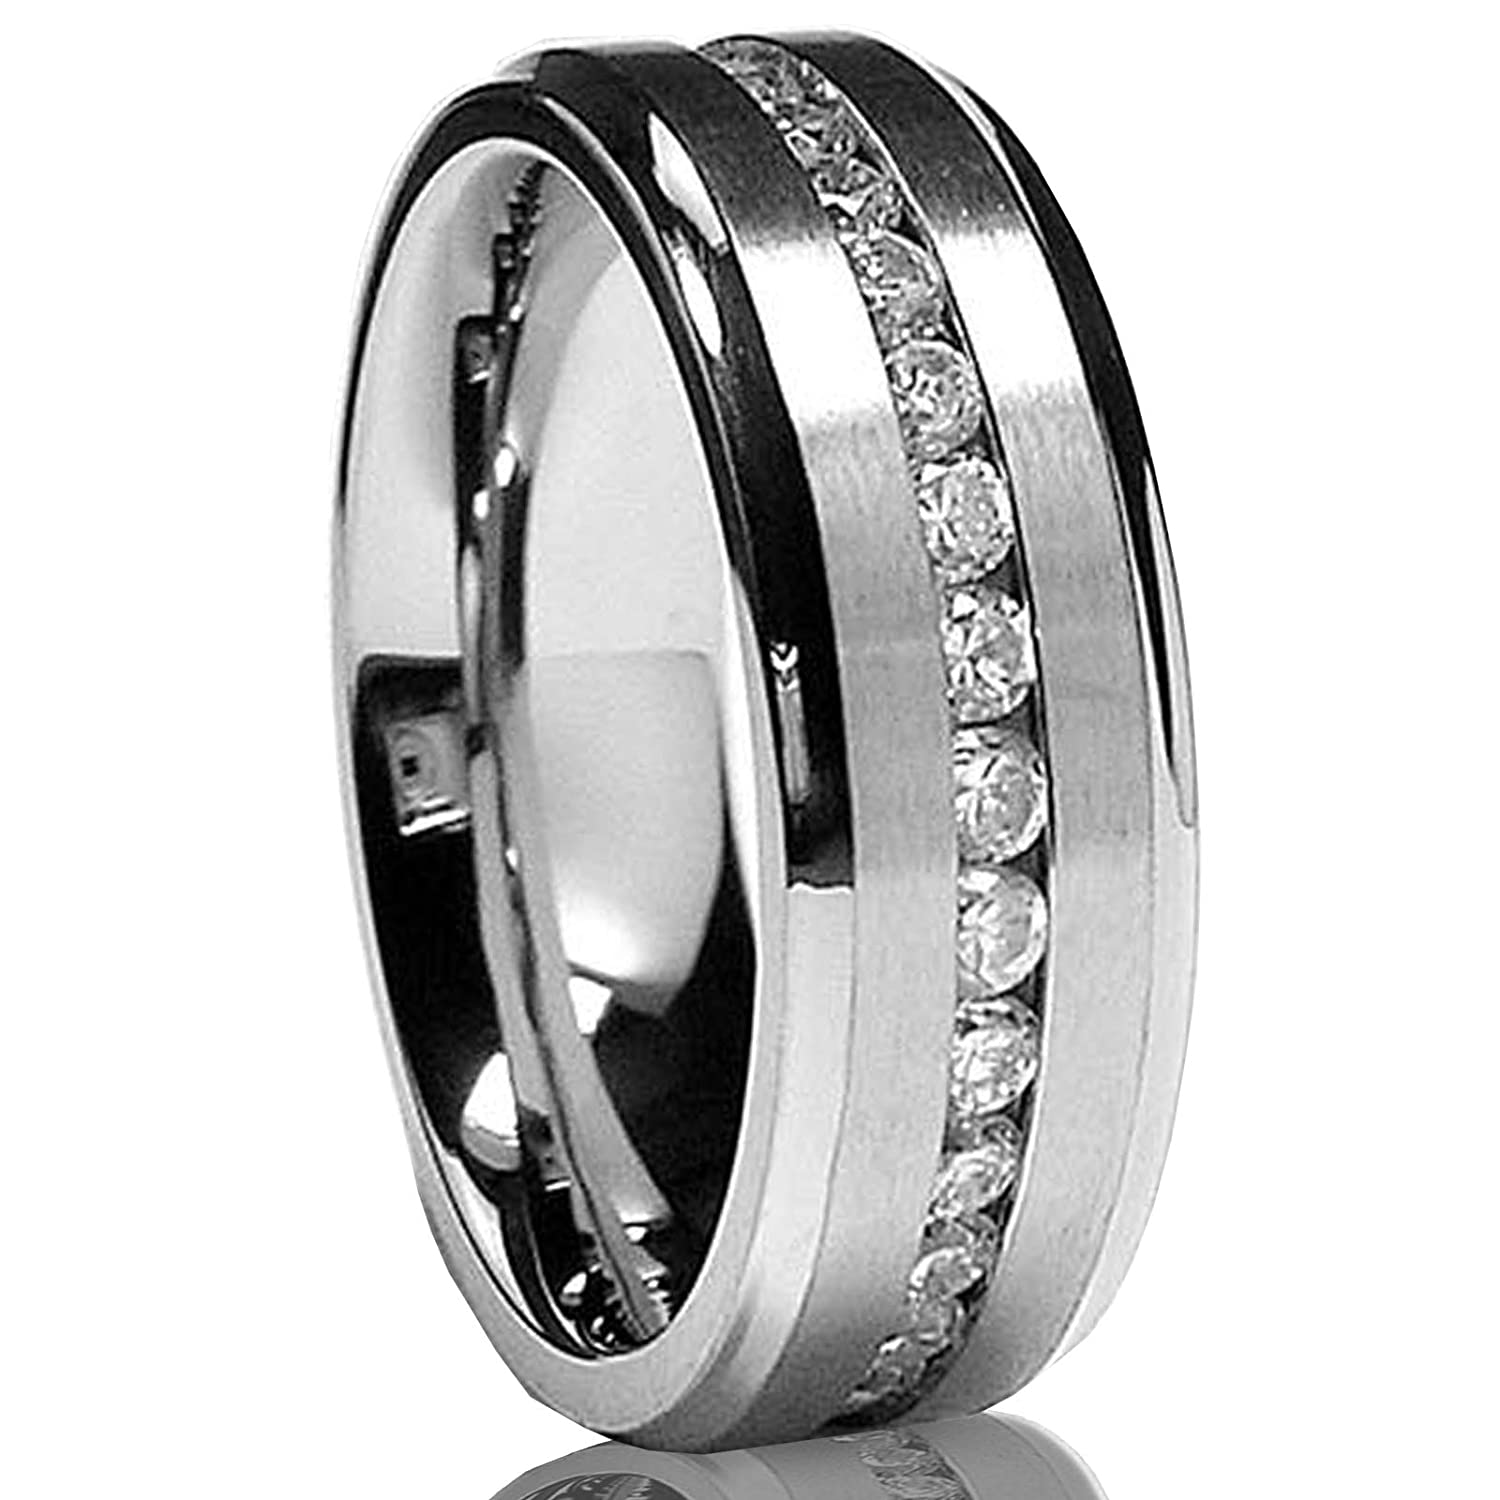 7MM Mens Eternity Titanium Ring Wedding Band with Cubic Zirconia CZ Sizes 5 to 13 Metal Masters Co